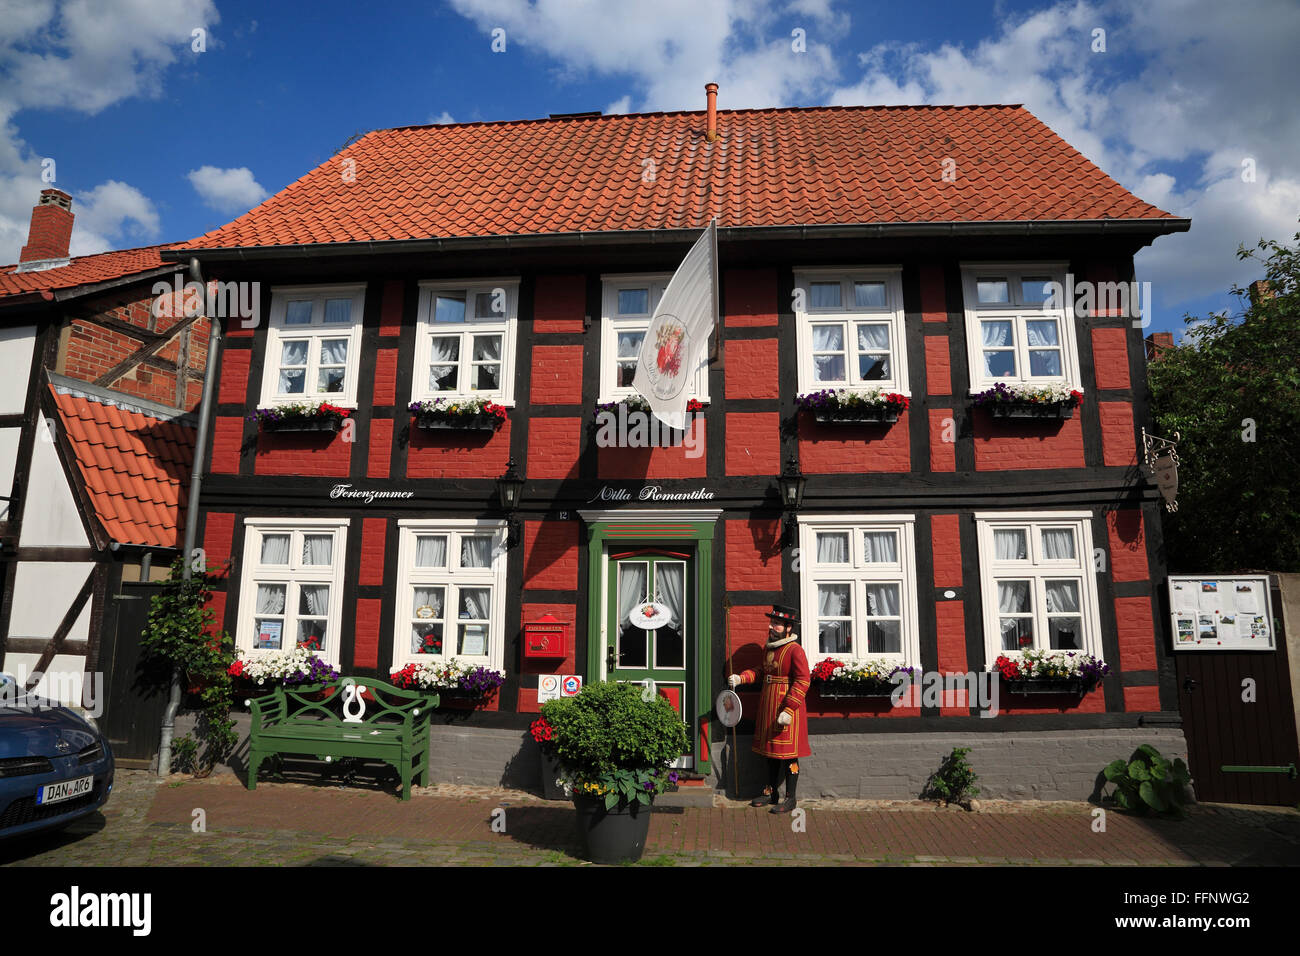 Pension Villa Romantica, Bett and Bike, Hitzacker Elbe, Lower Saxony, Germany, Europe - Stock Image